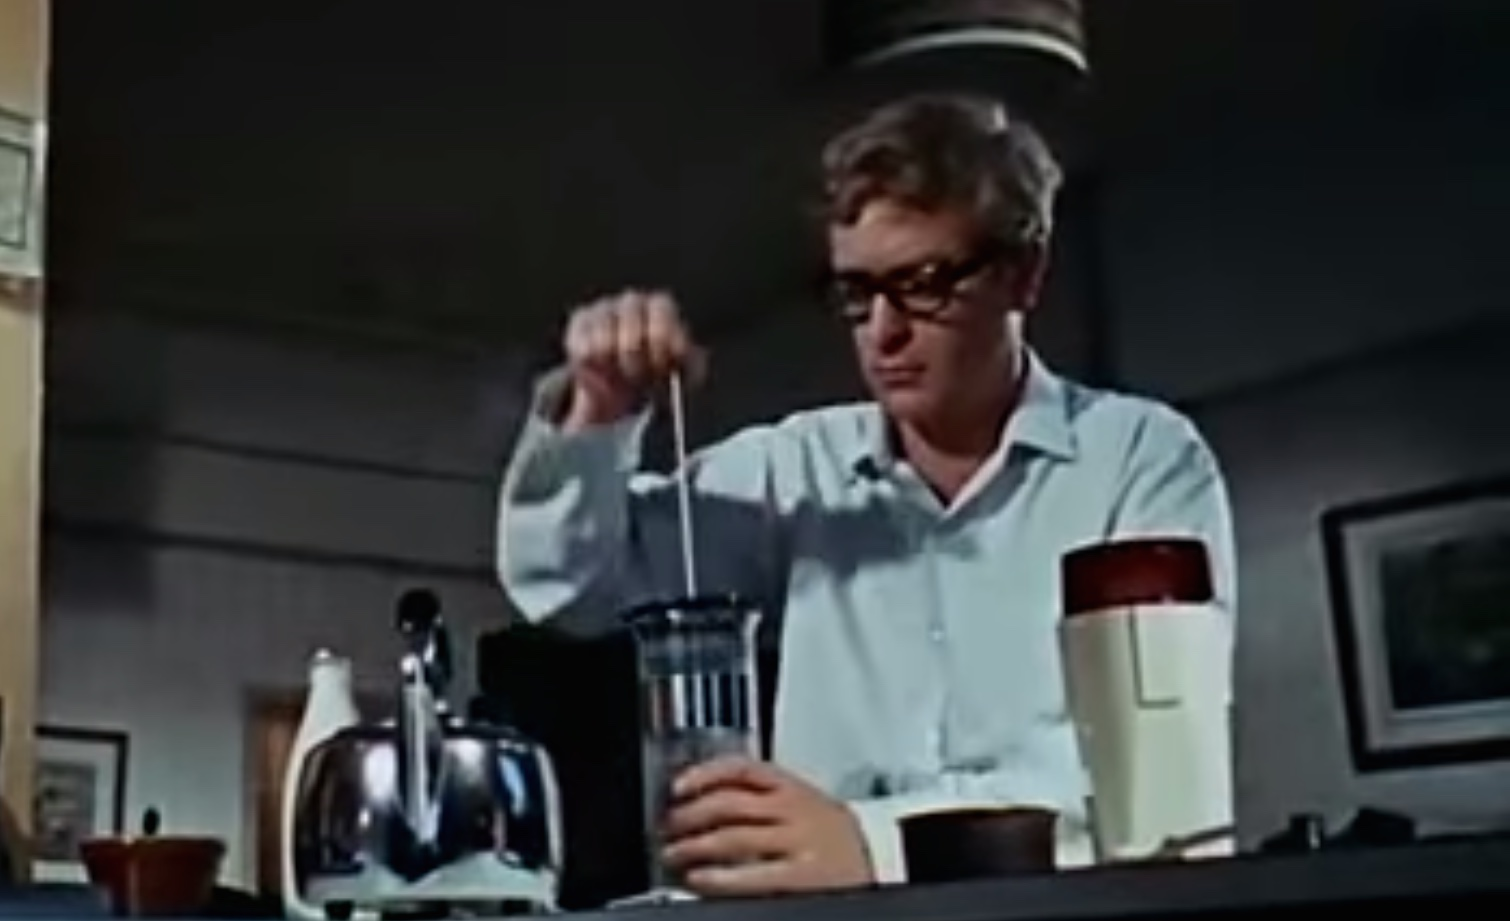 Cafetiere in movie Ipcress File.